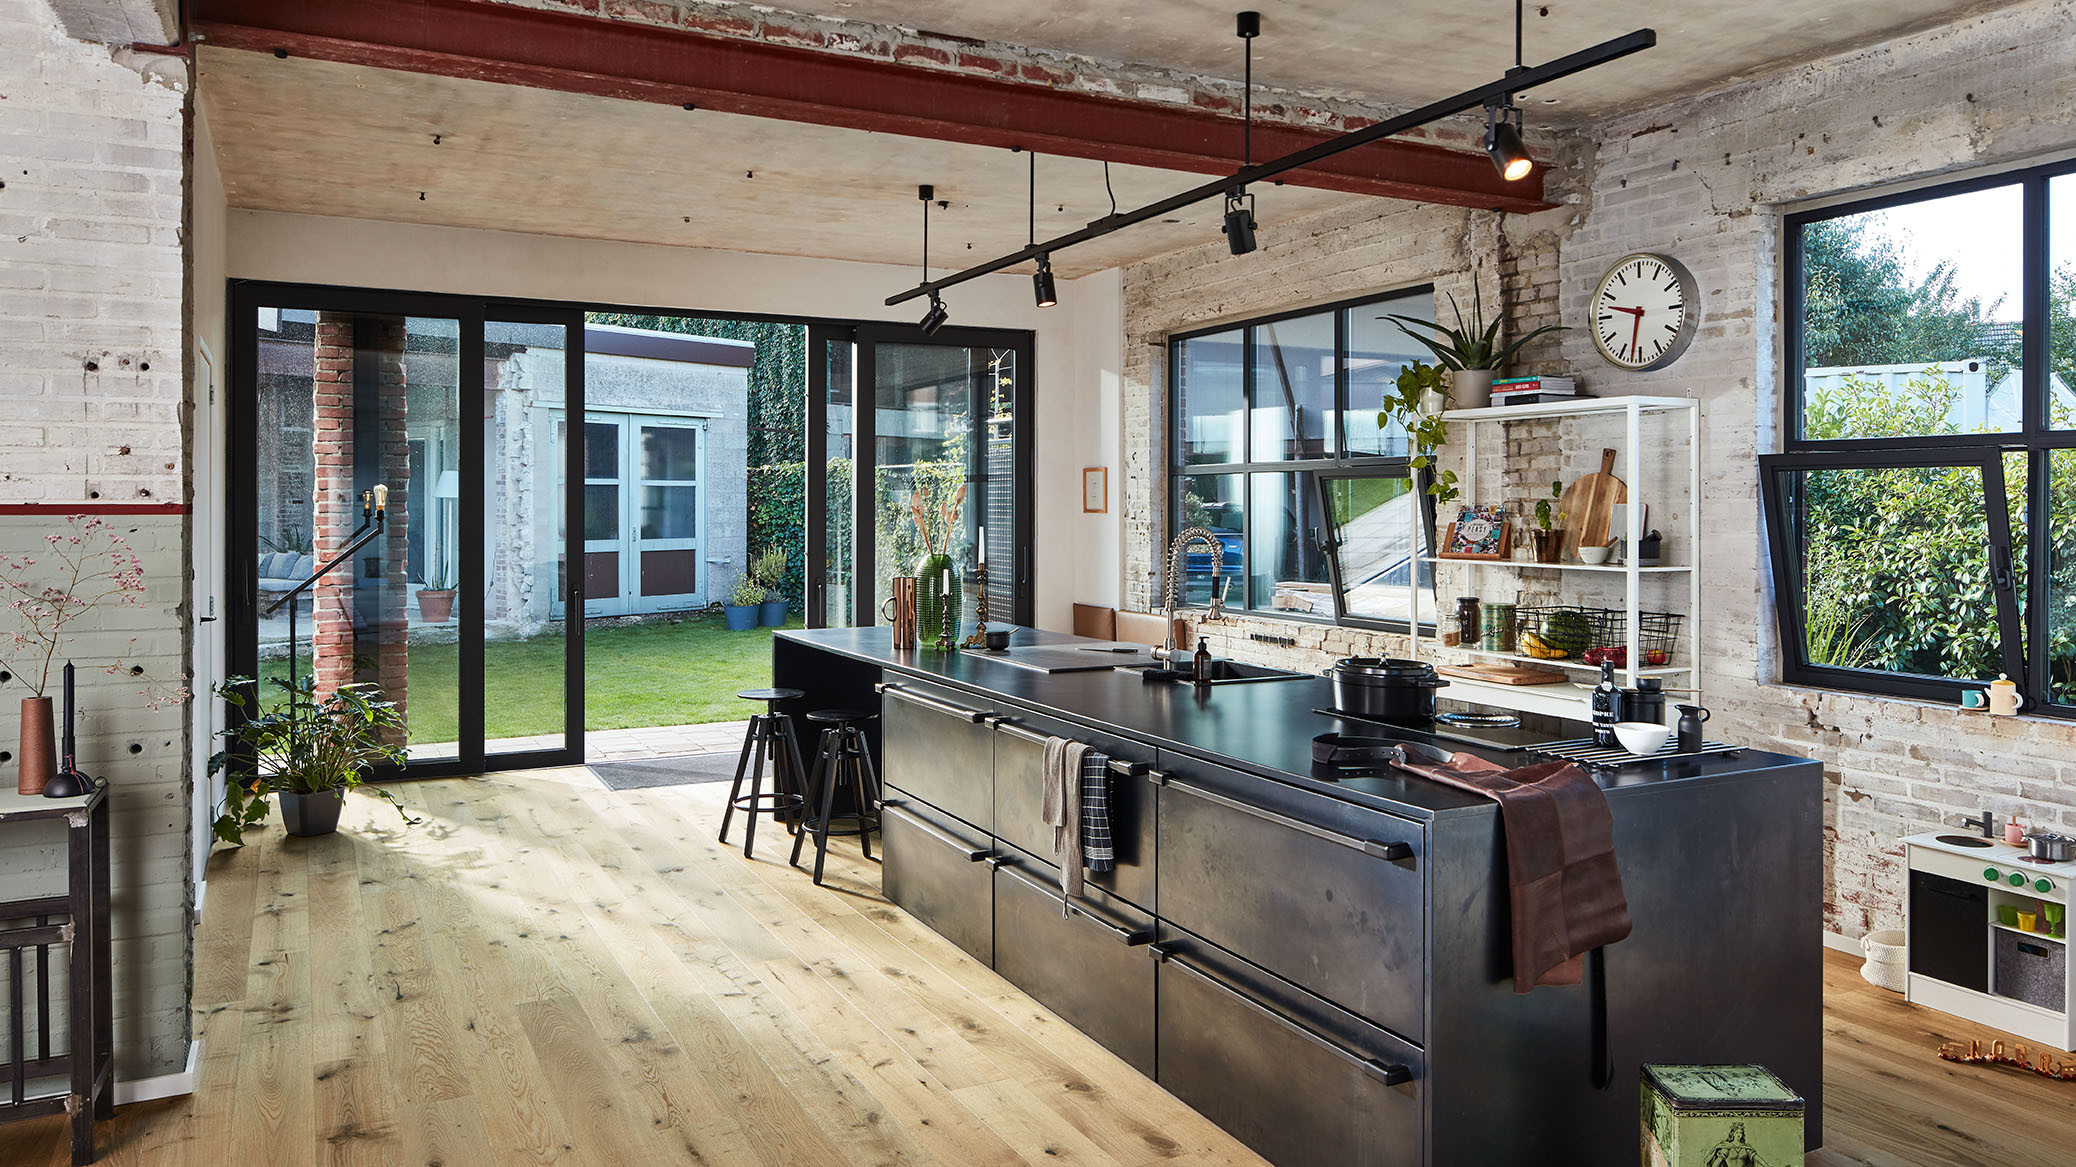 Industrial-Kitchen.-1 70+ Outdated Decorating Trends and Ideas Coming Back in 2021